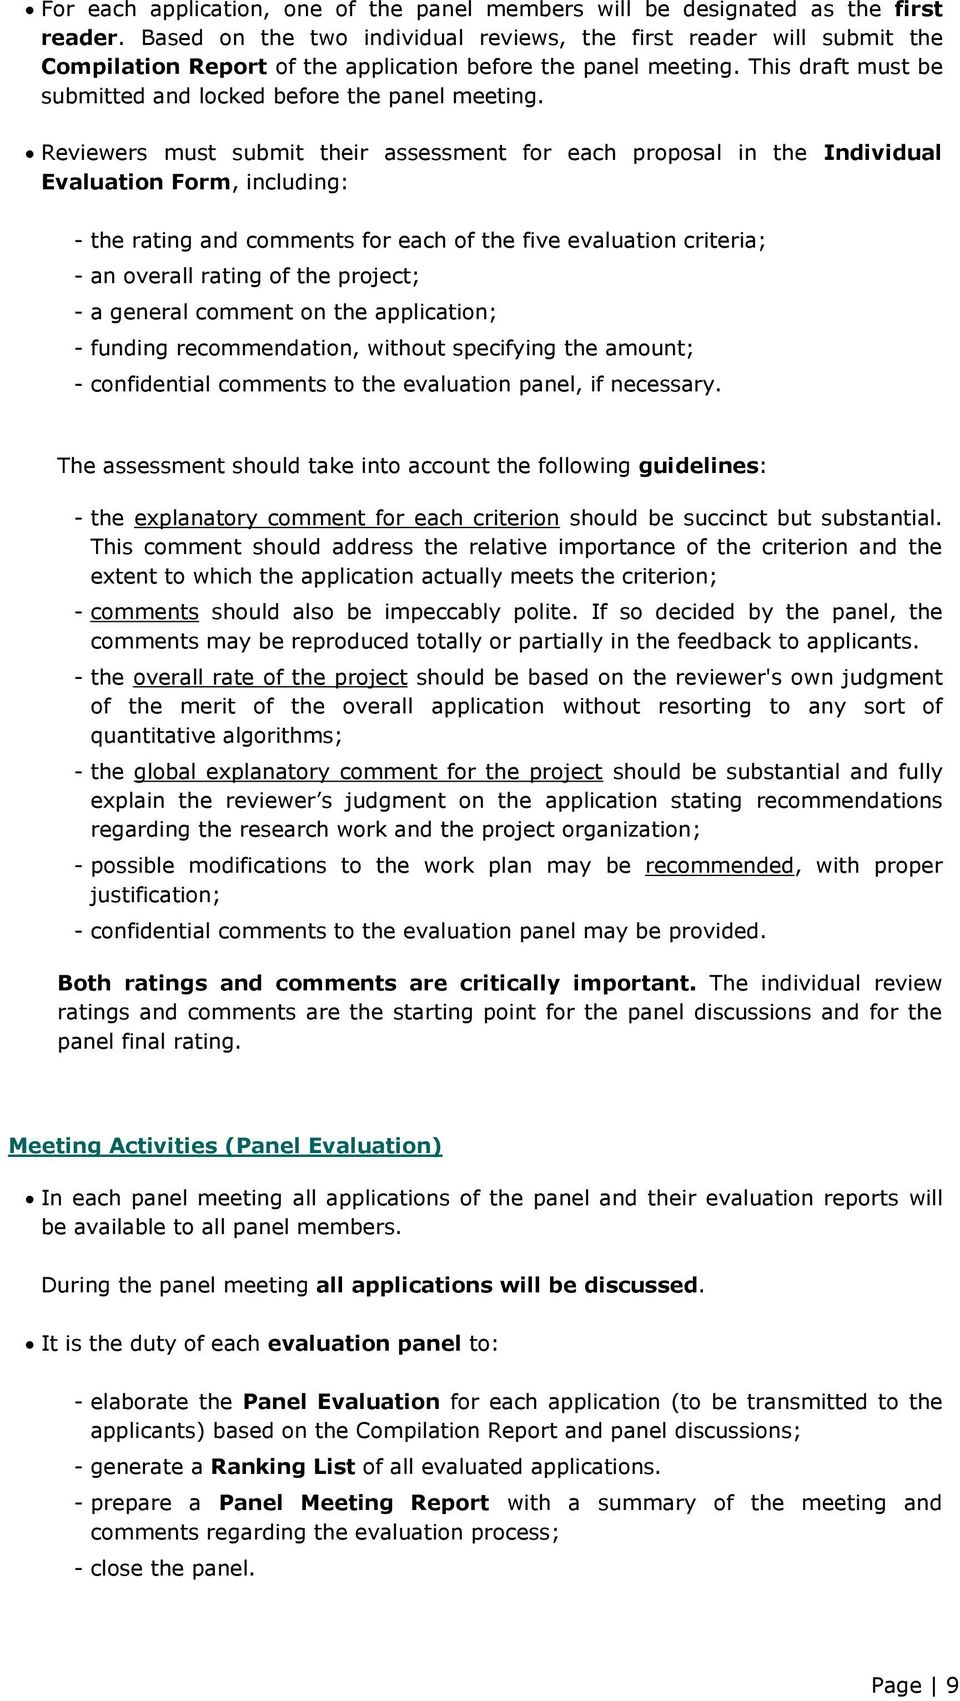 Reviewers must submit their assessment for each proposal in the Individual Evaluation Form, including: - the rating and comments for each of the five evaluation criteria; - an overall rating of the